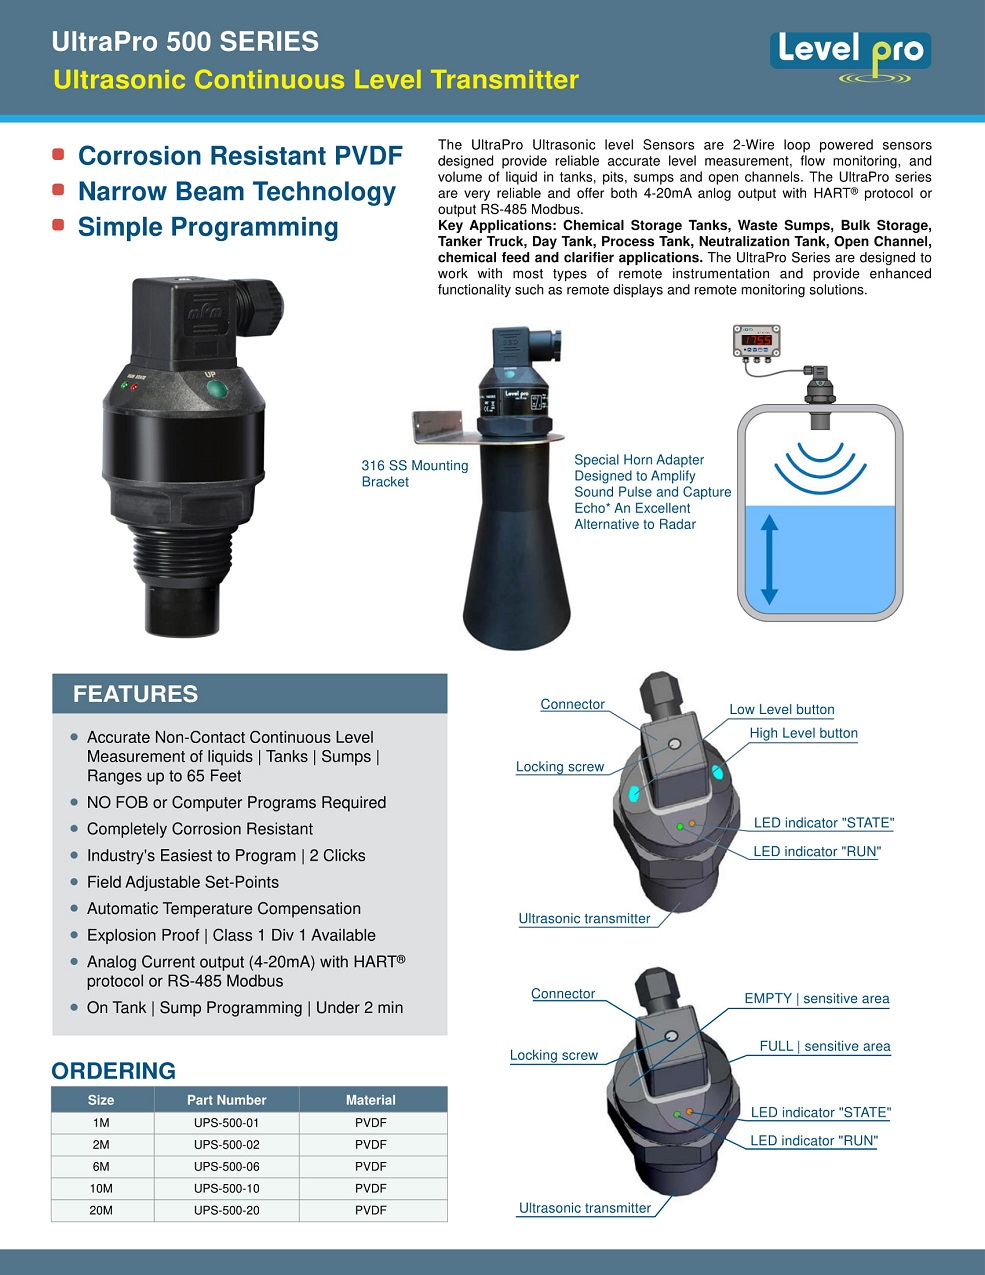 UltraPro 500 Ultrasonic Continuous Level Transmitter